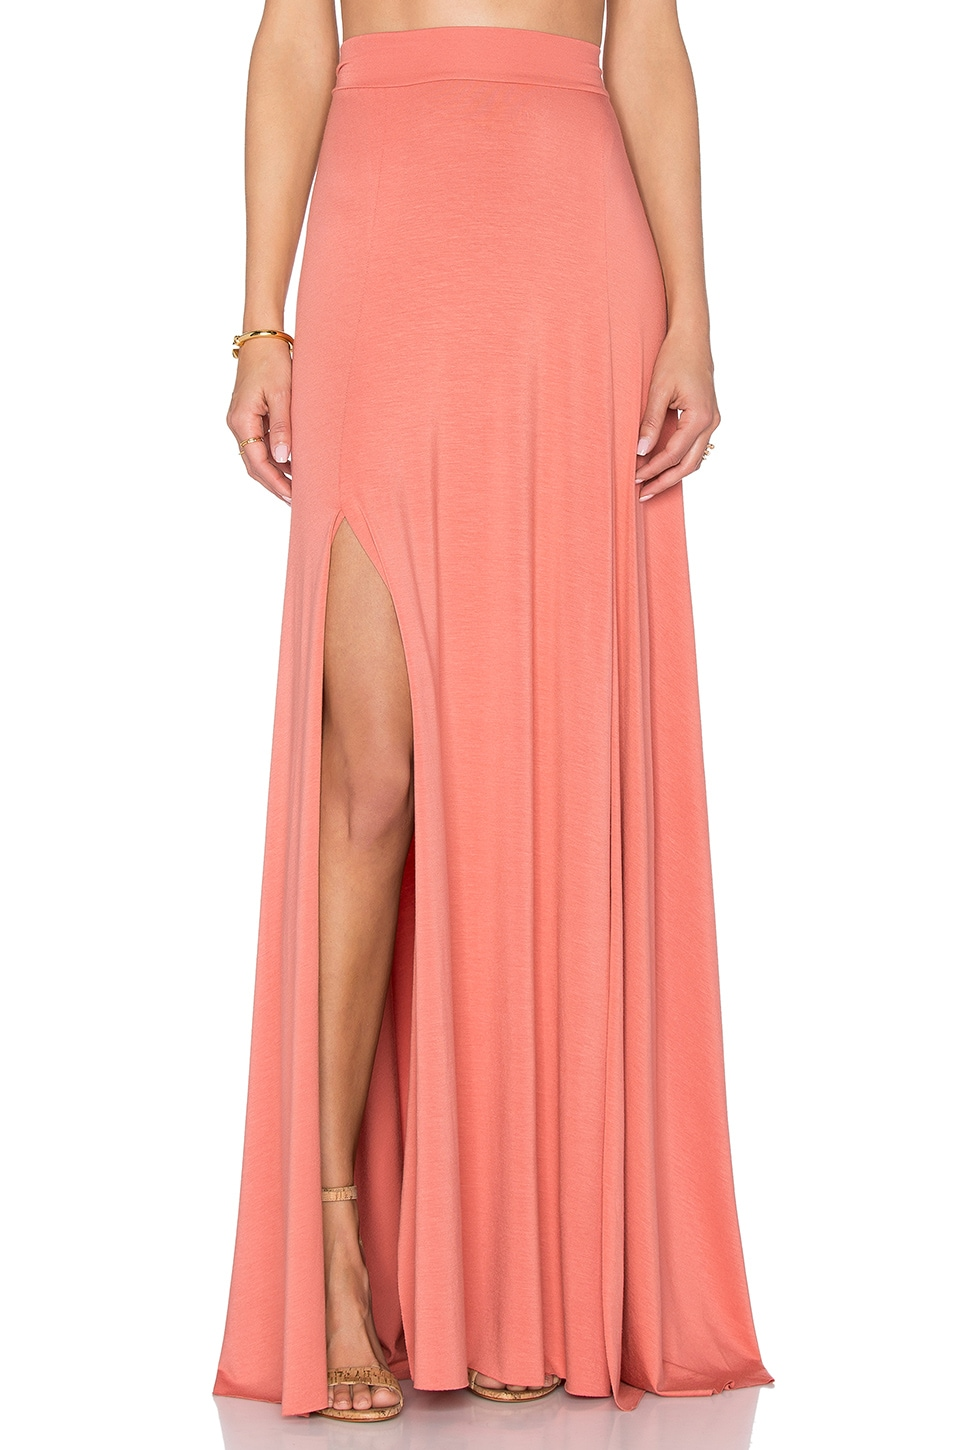 Rachel Pally Josefine Maxi Skirt in Mojave